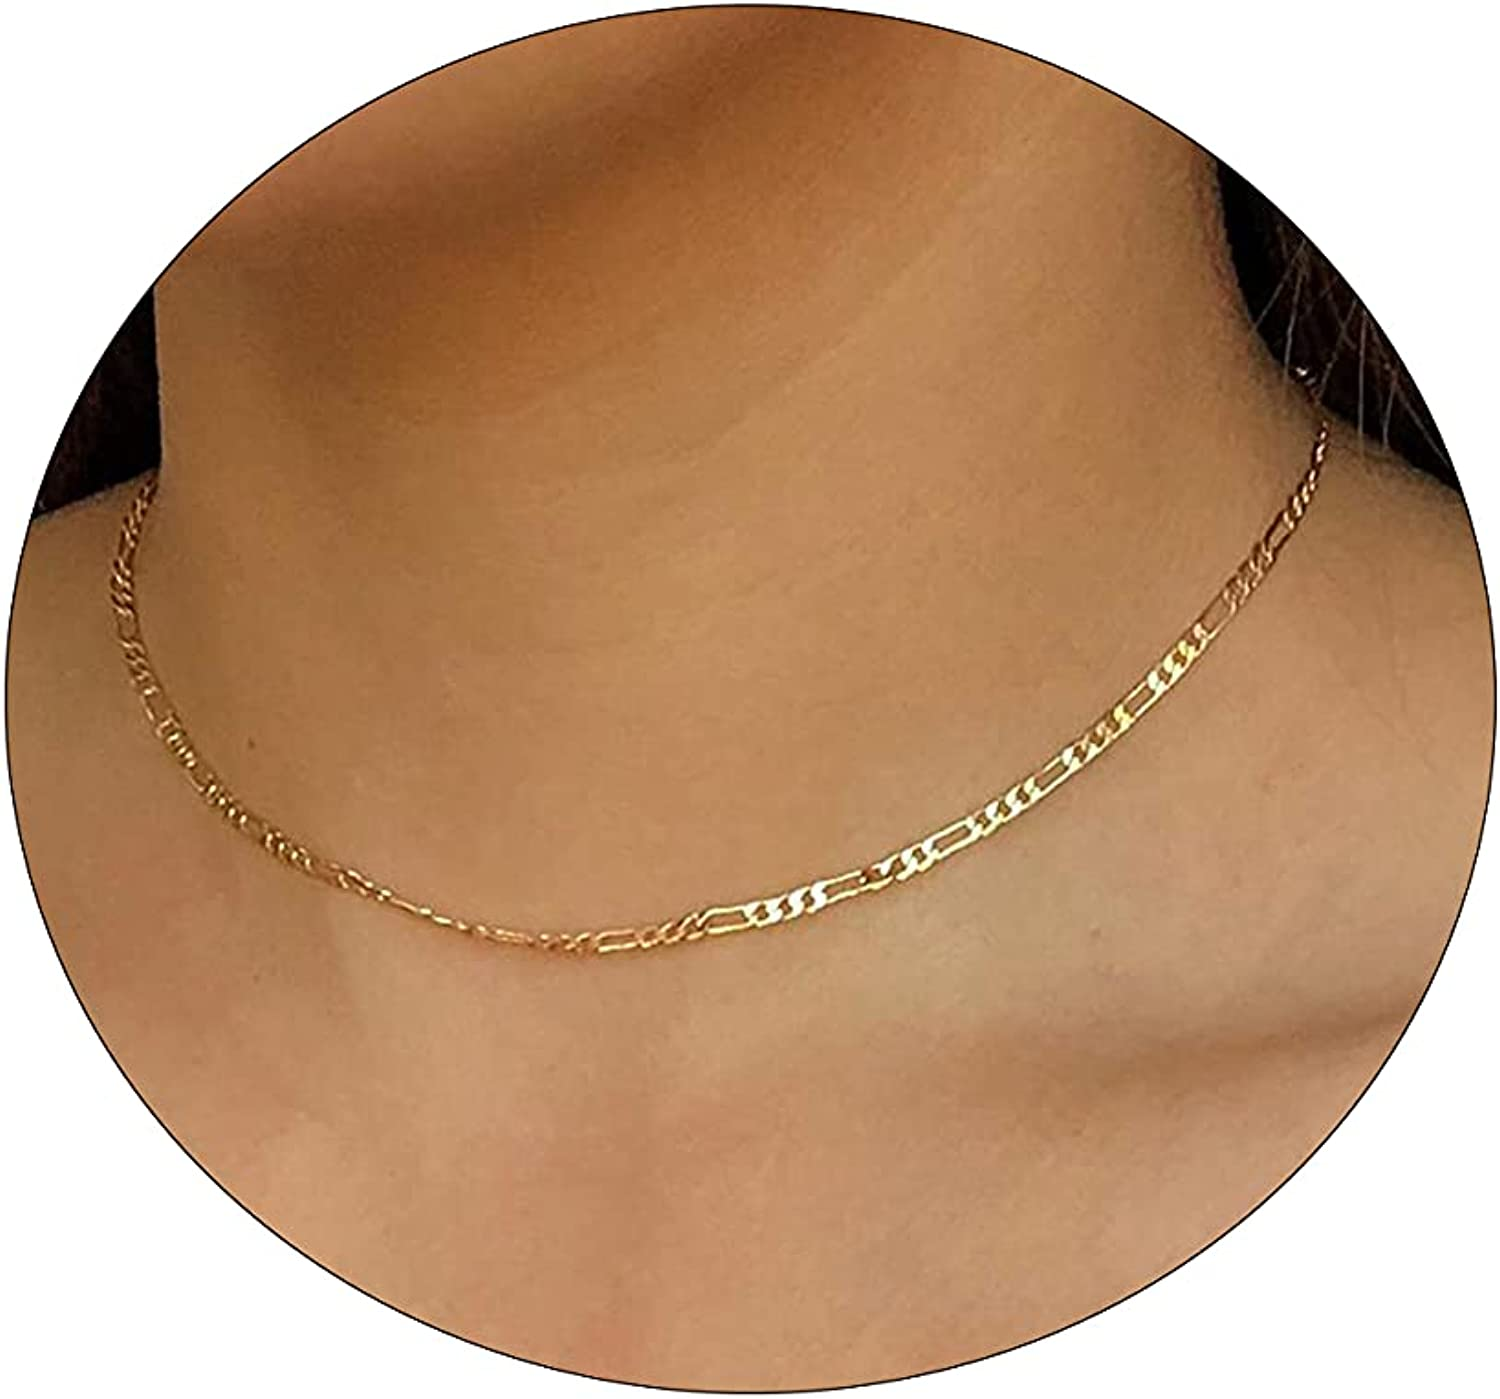 Carovo Dainty Gold Chain Choker Necklace for Women 18K Gold Plated Minimalist Figaro Beaded Lace Satellite Coin Chain Necklace Delicate Choker Jewelry Gifts for Women